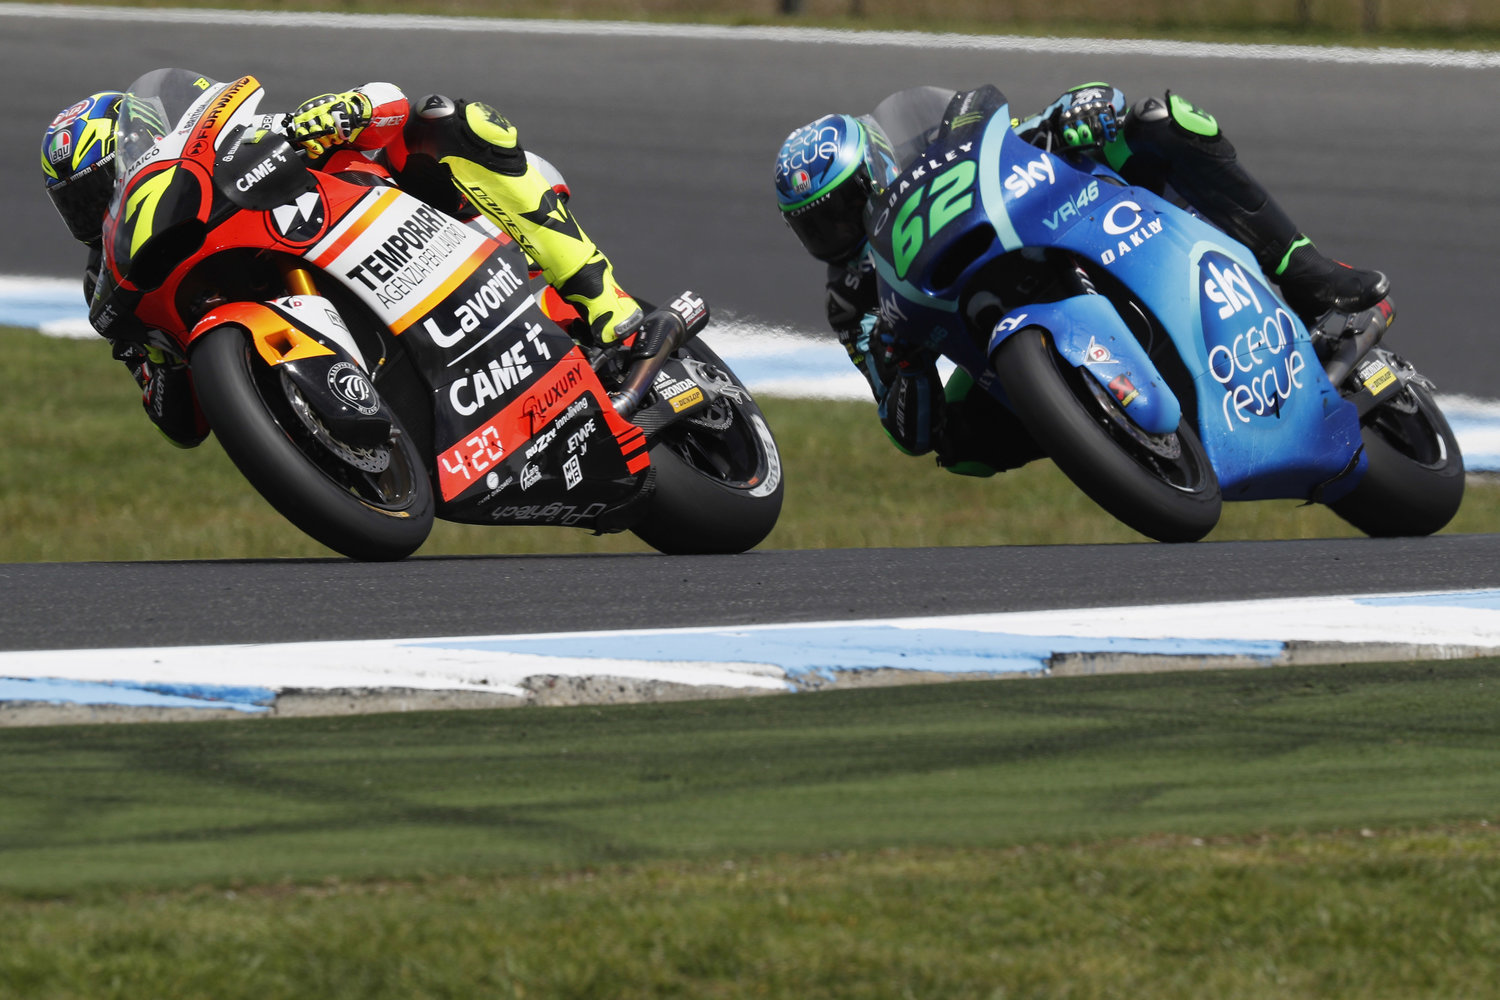 Forward Racing to take home points from intense weekend Down Under